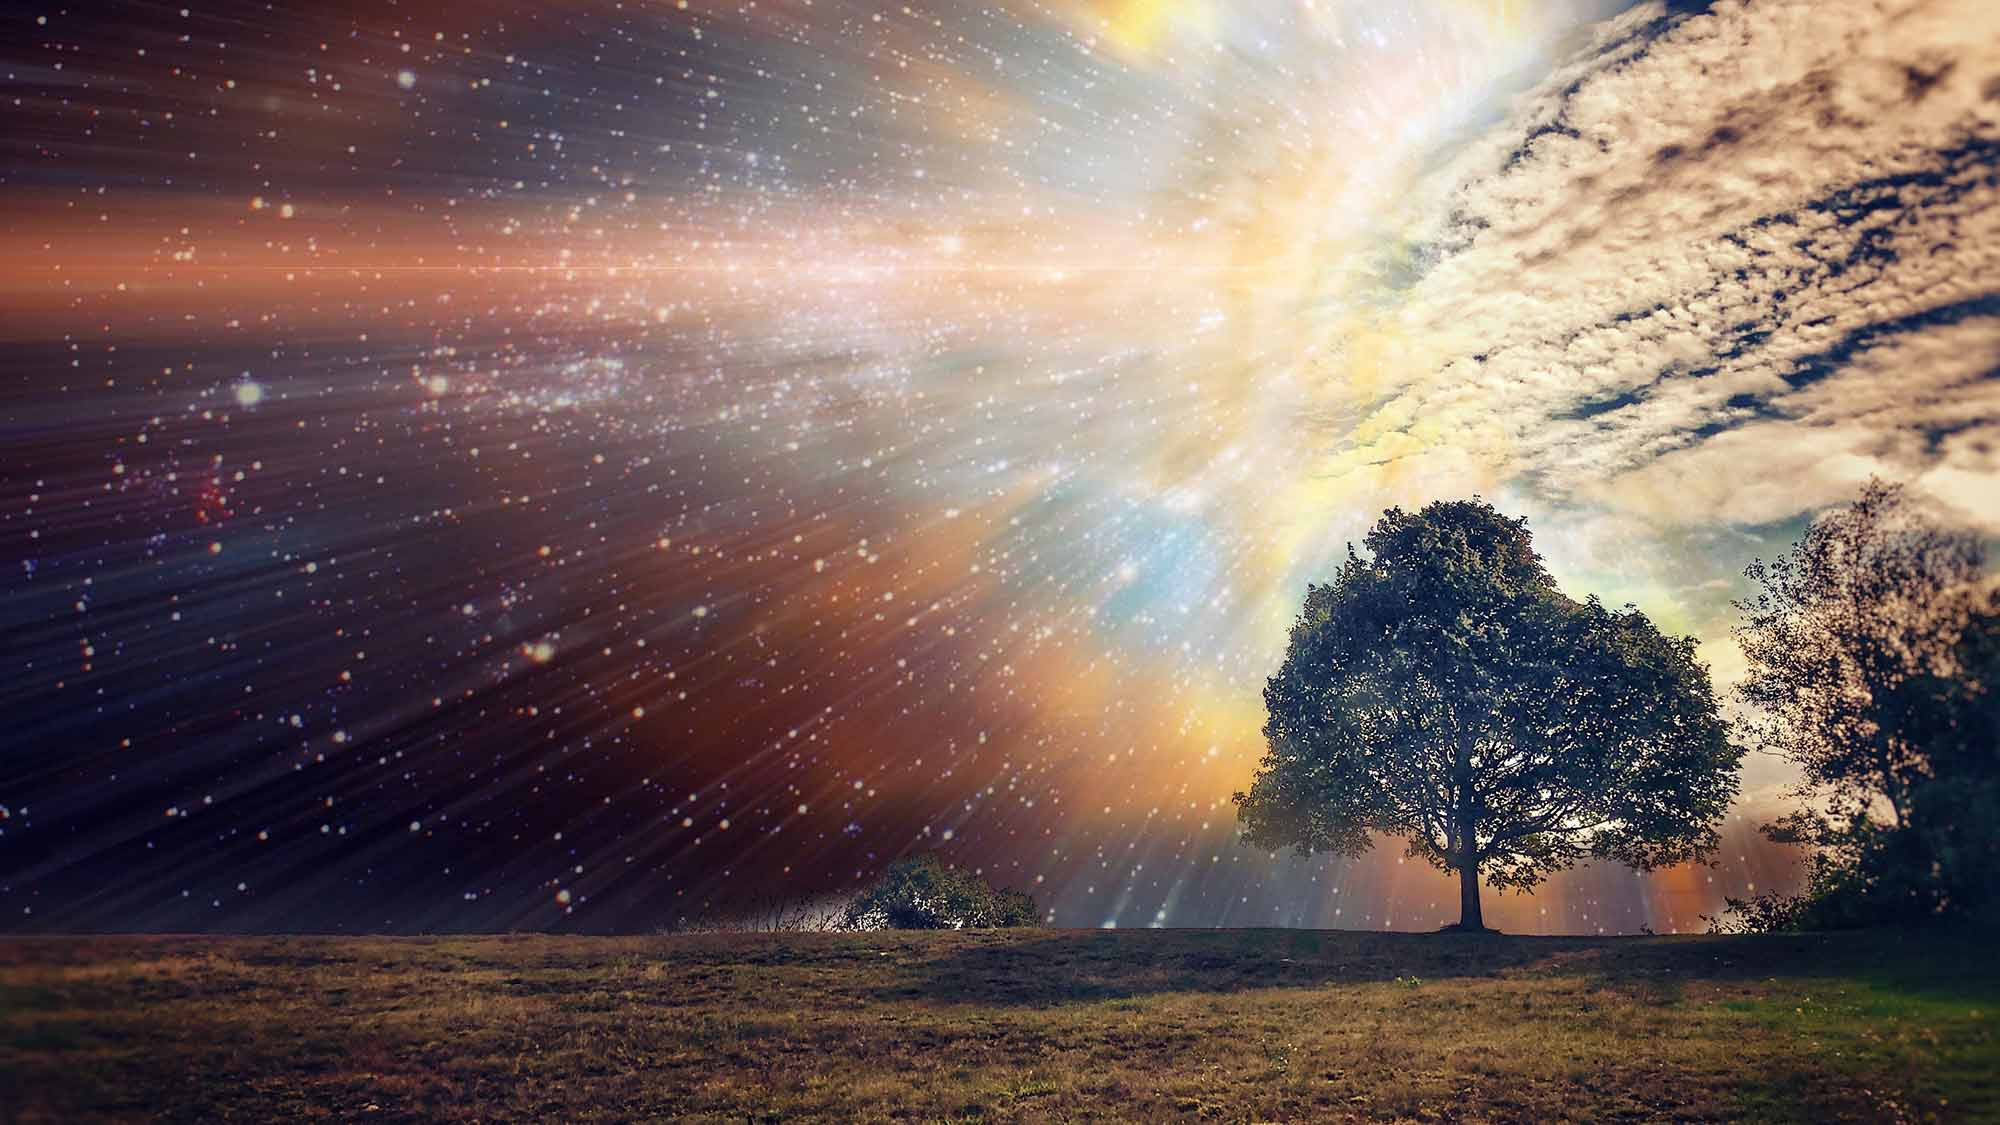 Surreal sky background to tree in field